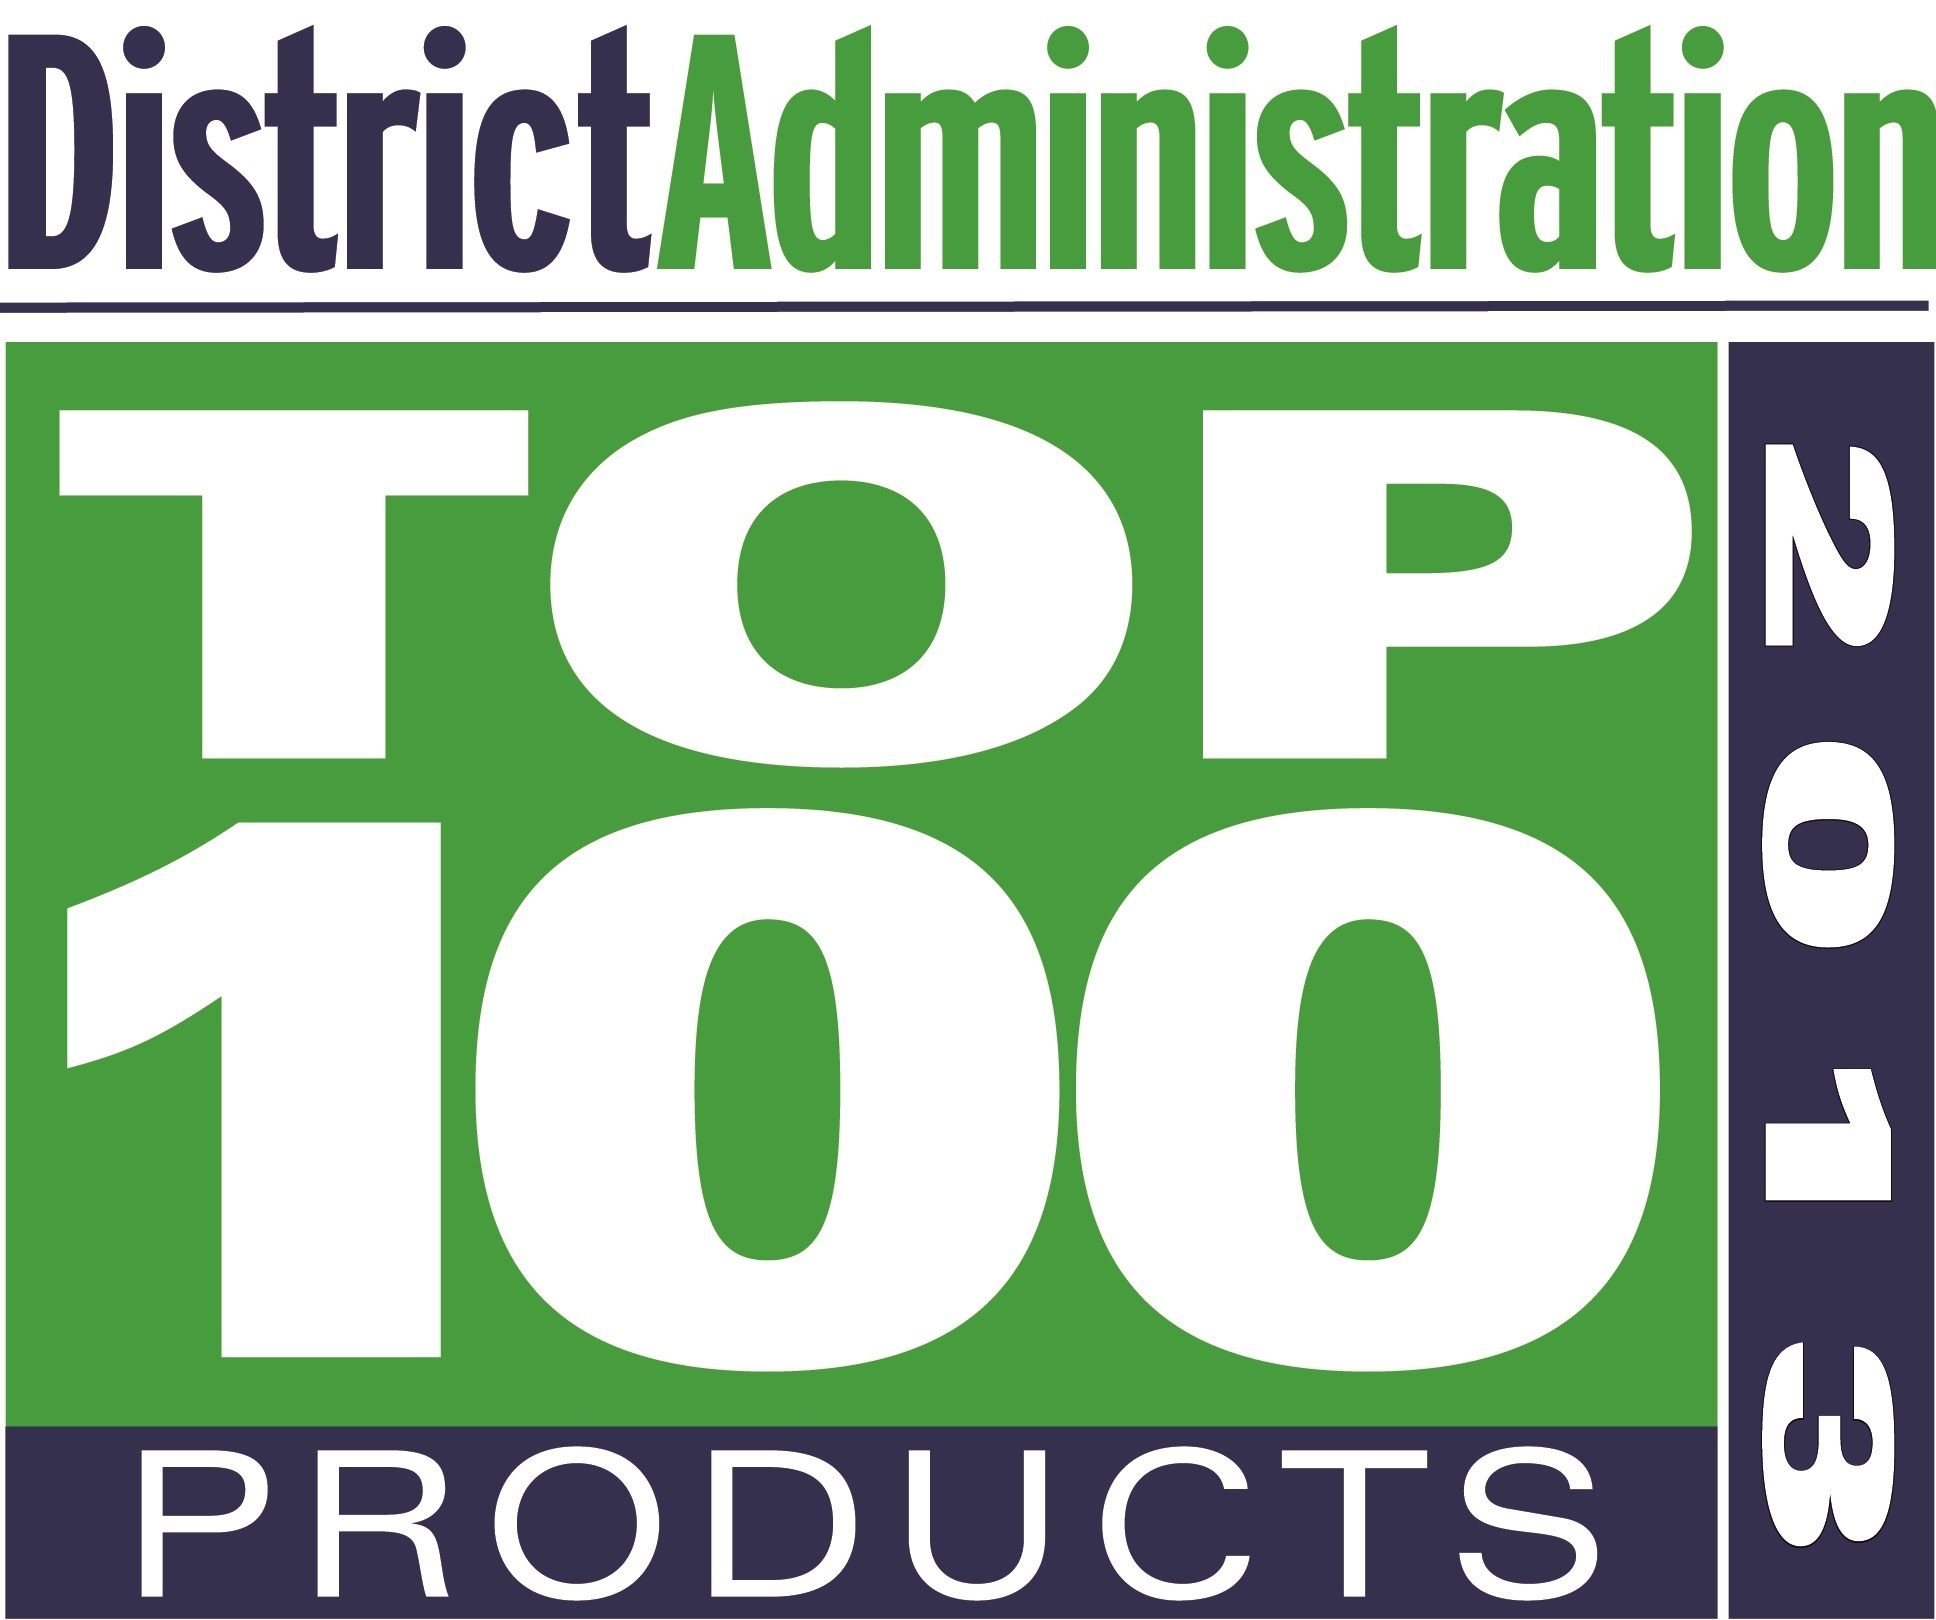 SafeSchools Training Named Top 100 Product by District Administration Magazine Four Years Straight